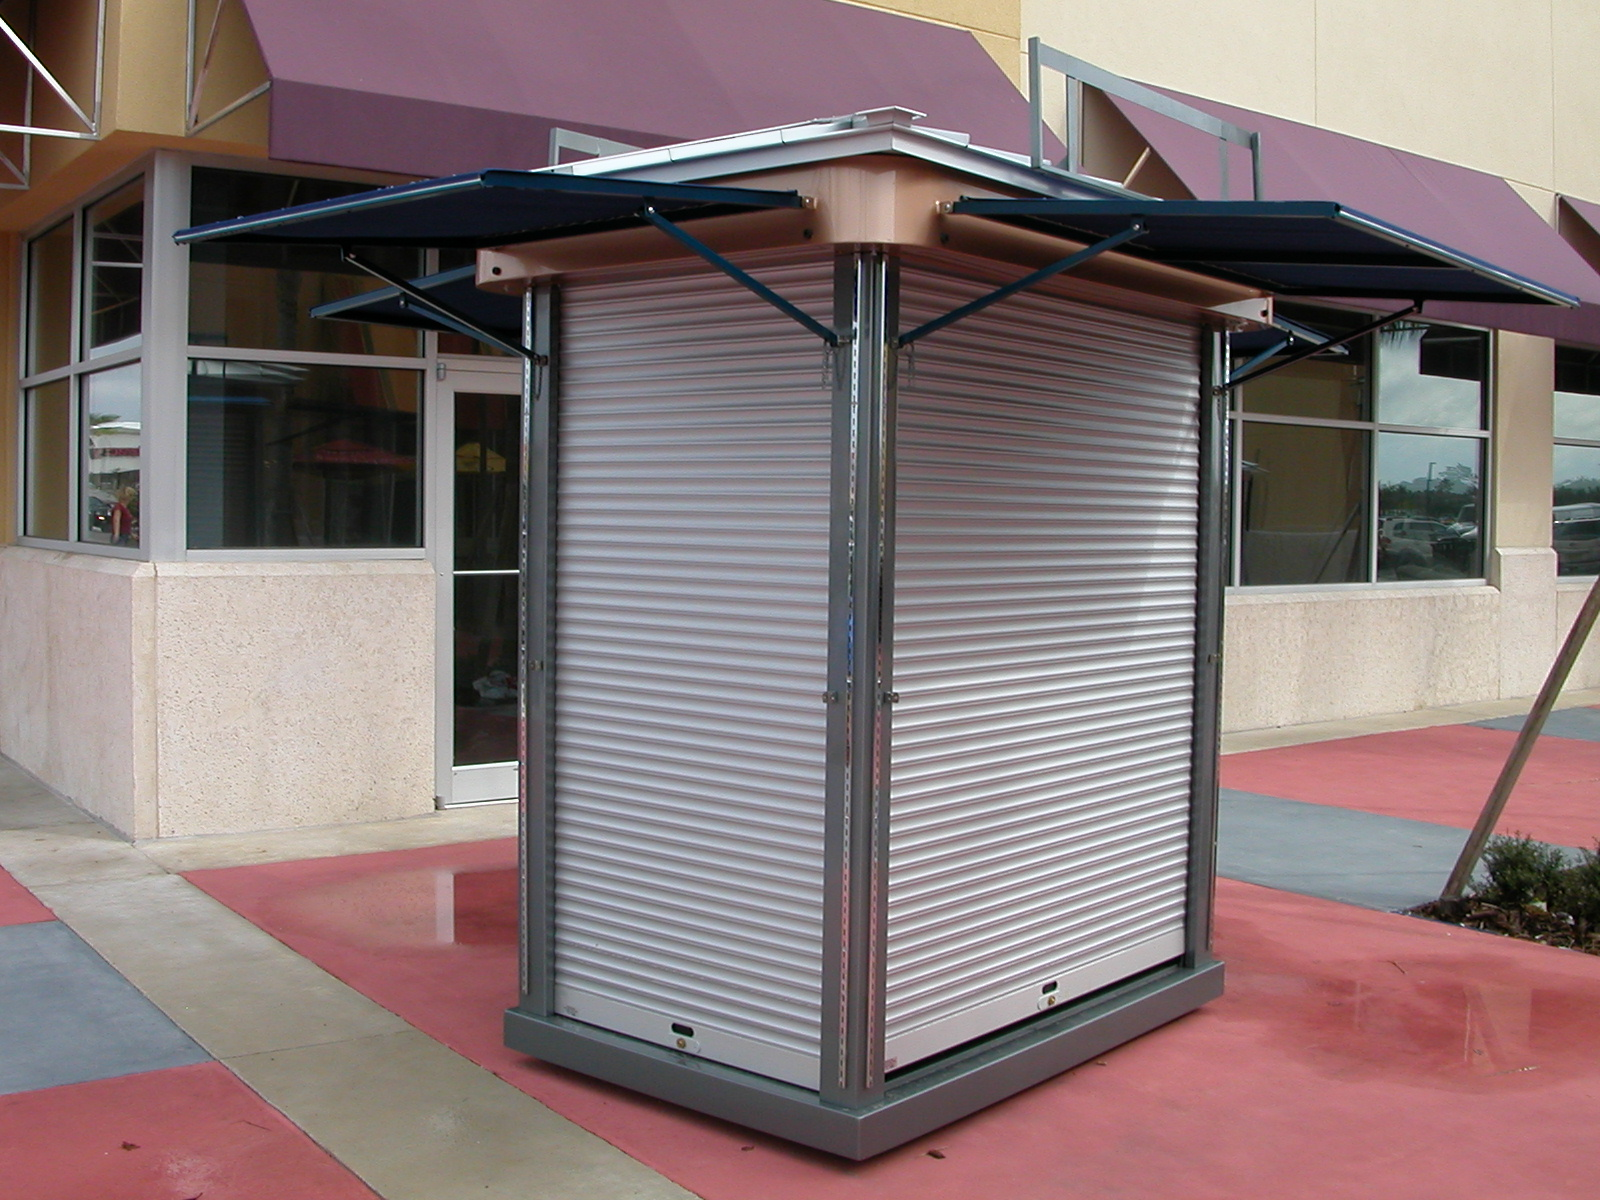 Outdoor retail mall kiosk rmu | Merchandising Frontiers Inc